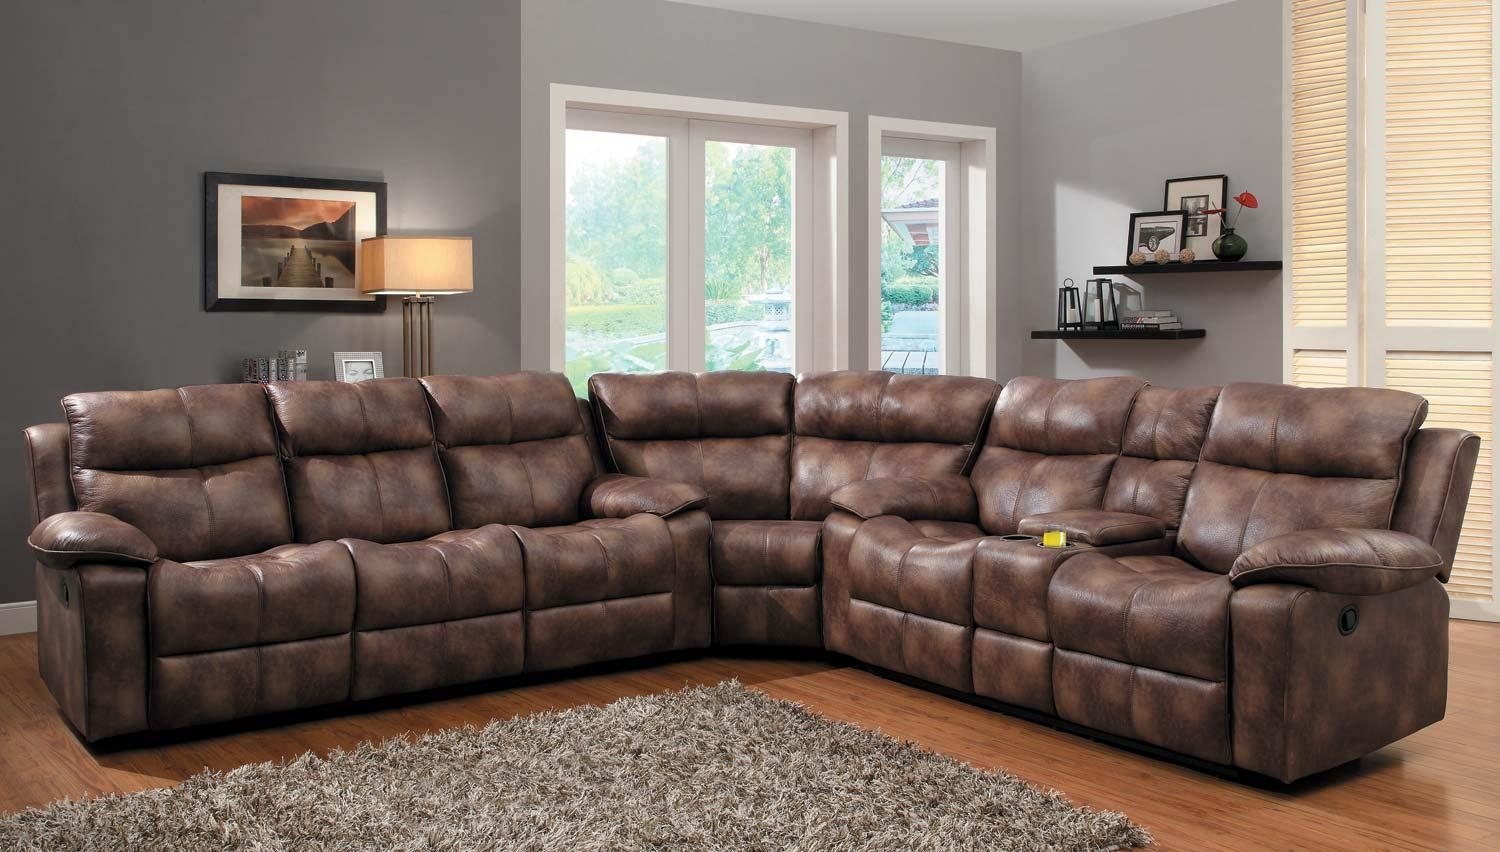 Sofas Center : Curved Sectional Recliners Cleanupflorida Com With Regard To Curved Sectional Sofas With Recliner (Image 15 of 20)